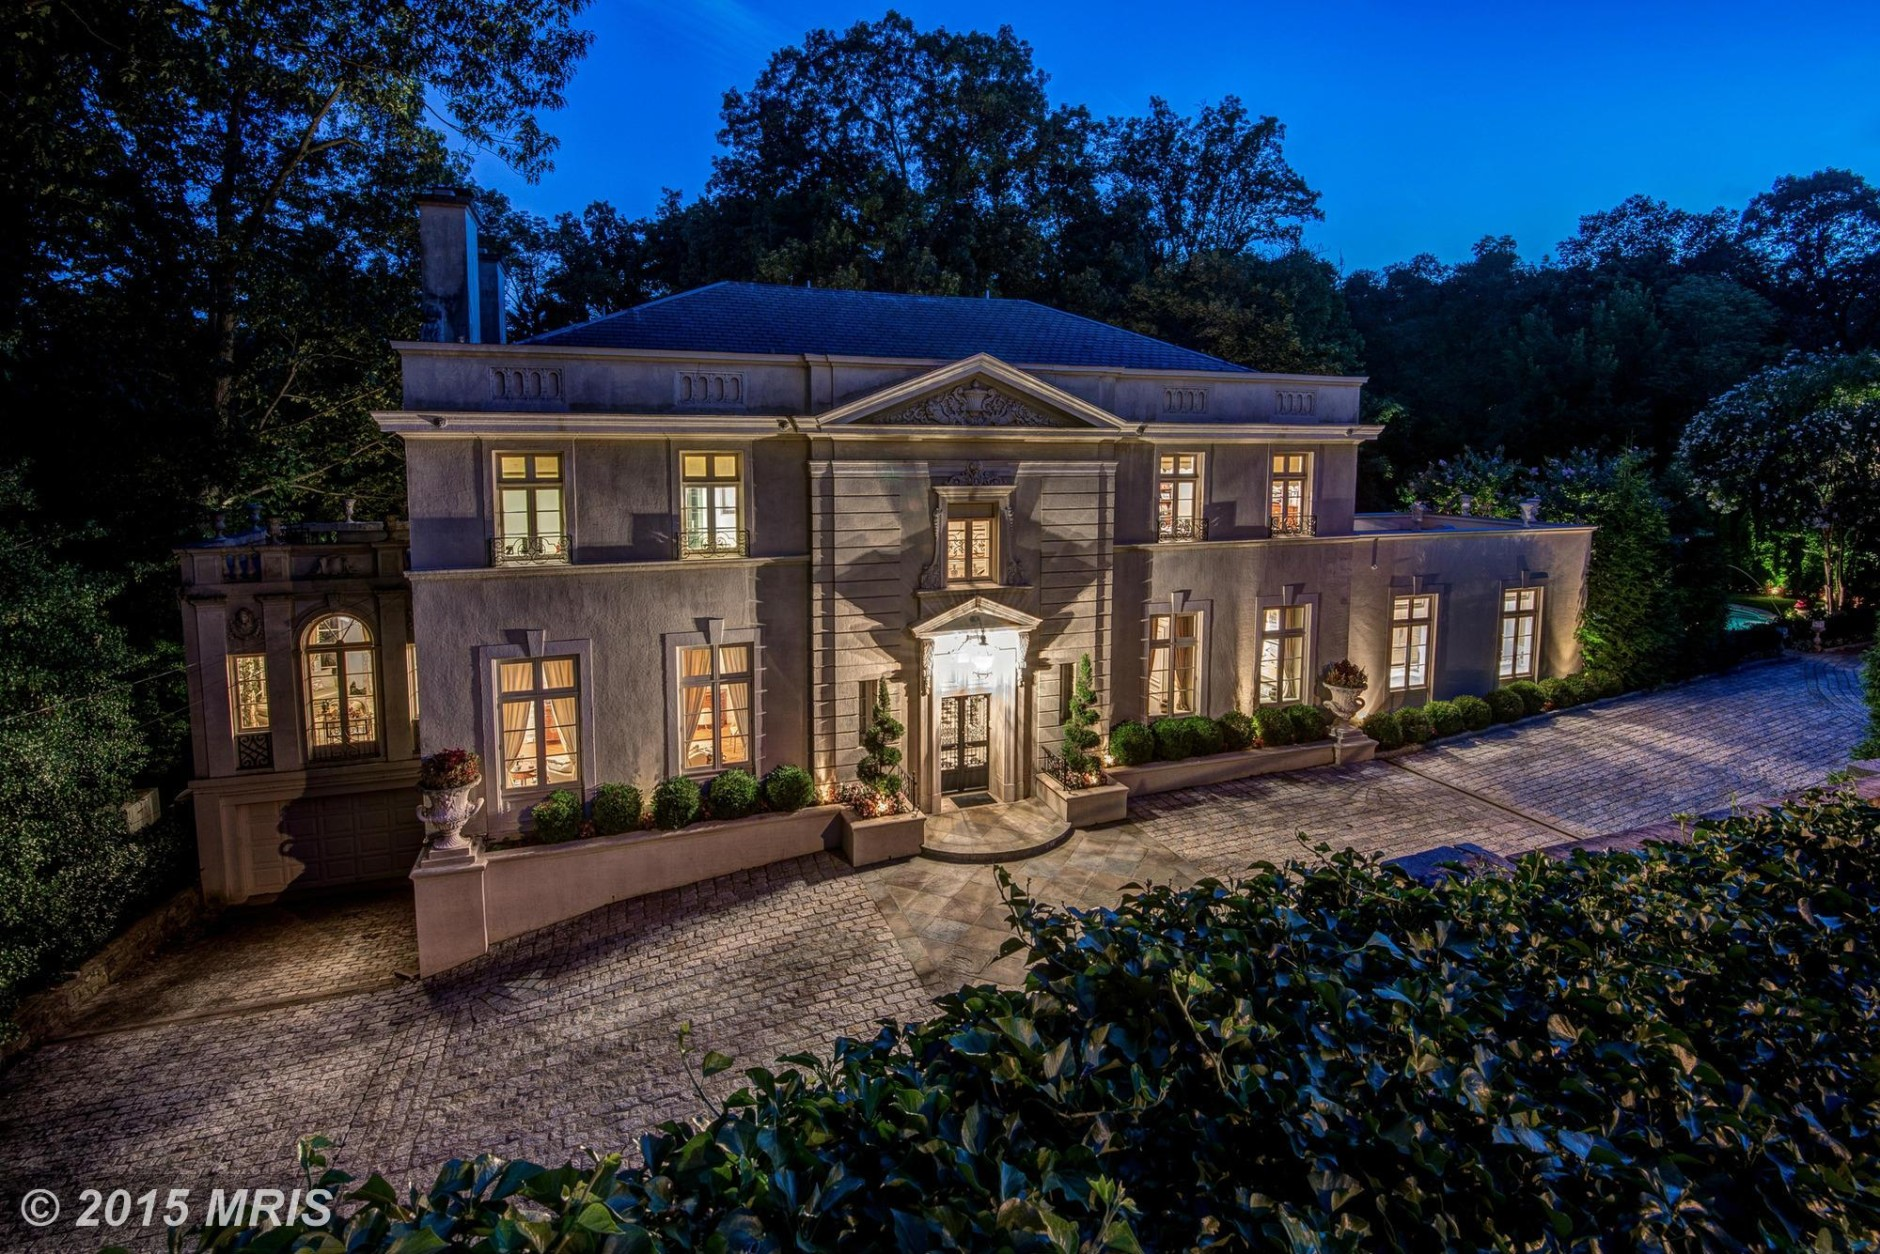 2850 Woodland Drive NW, Washington, D.C., bought by Secretary of Commerce Wilbur Ross, went for over $10 million. (MRIS)